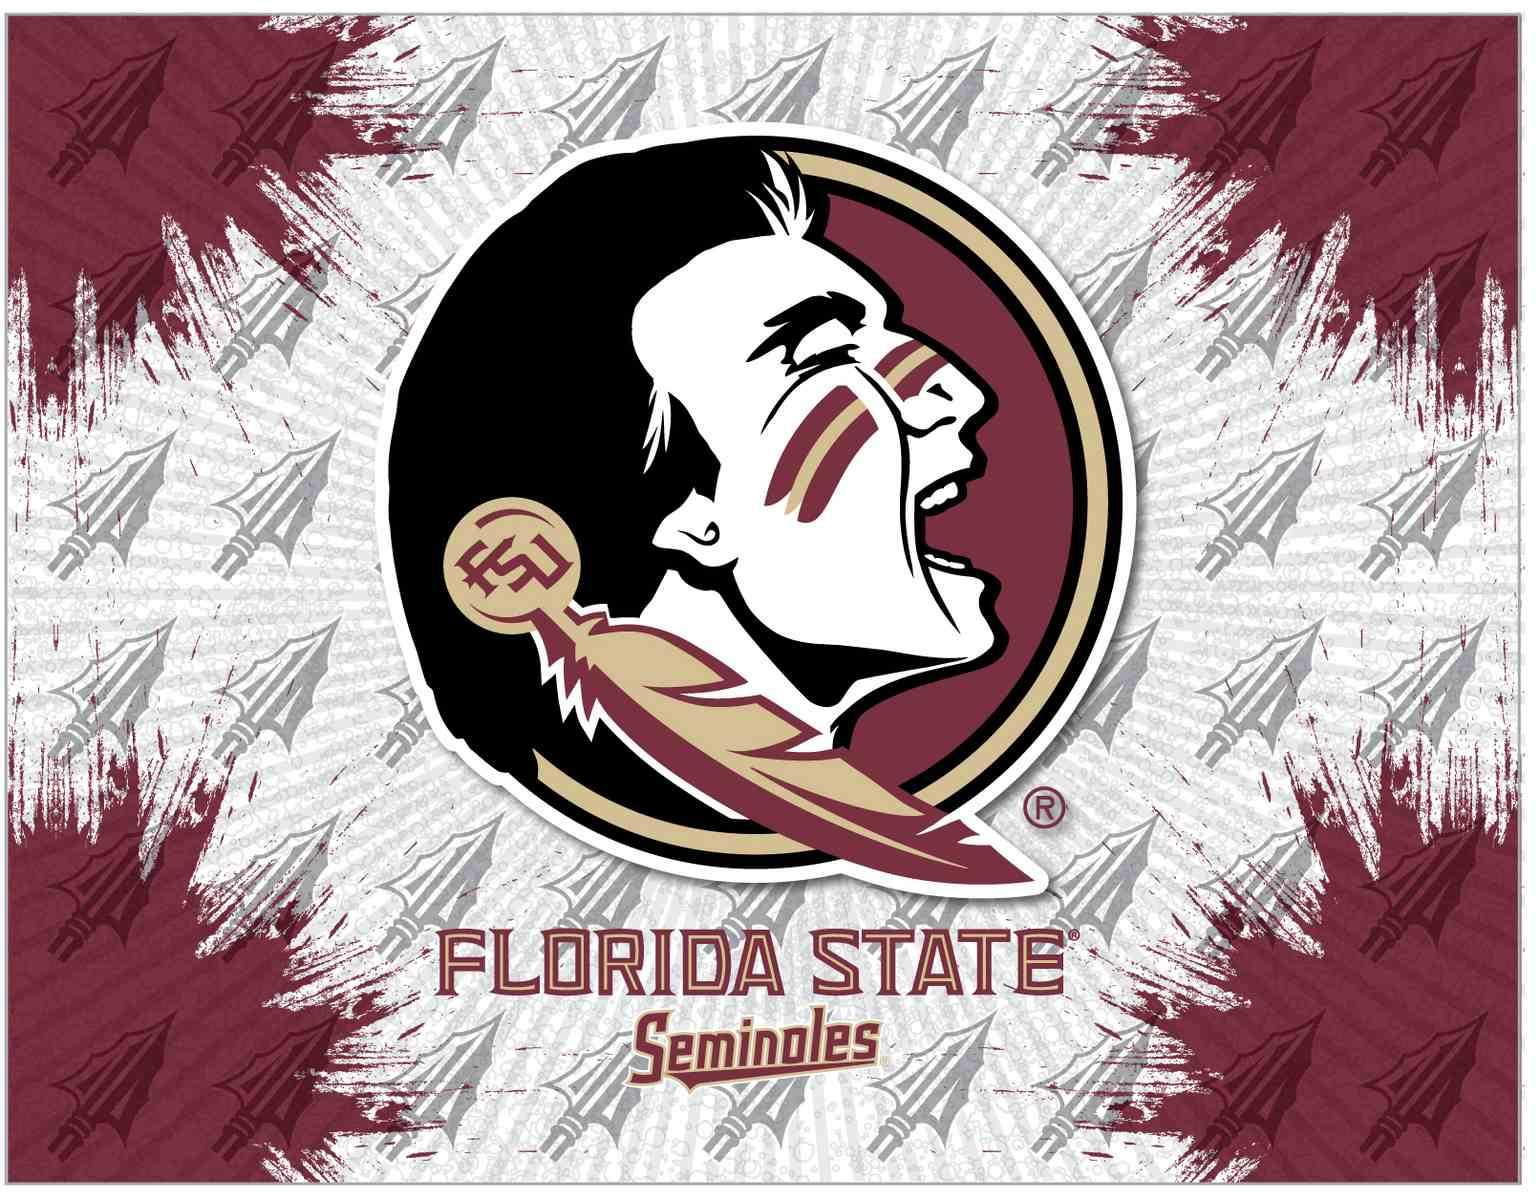 Florida State University Canvas.